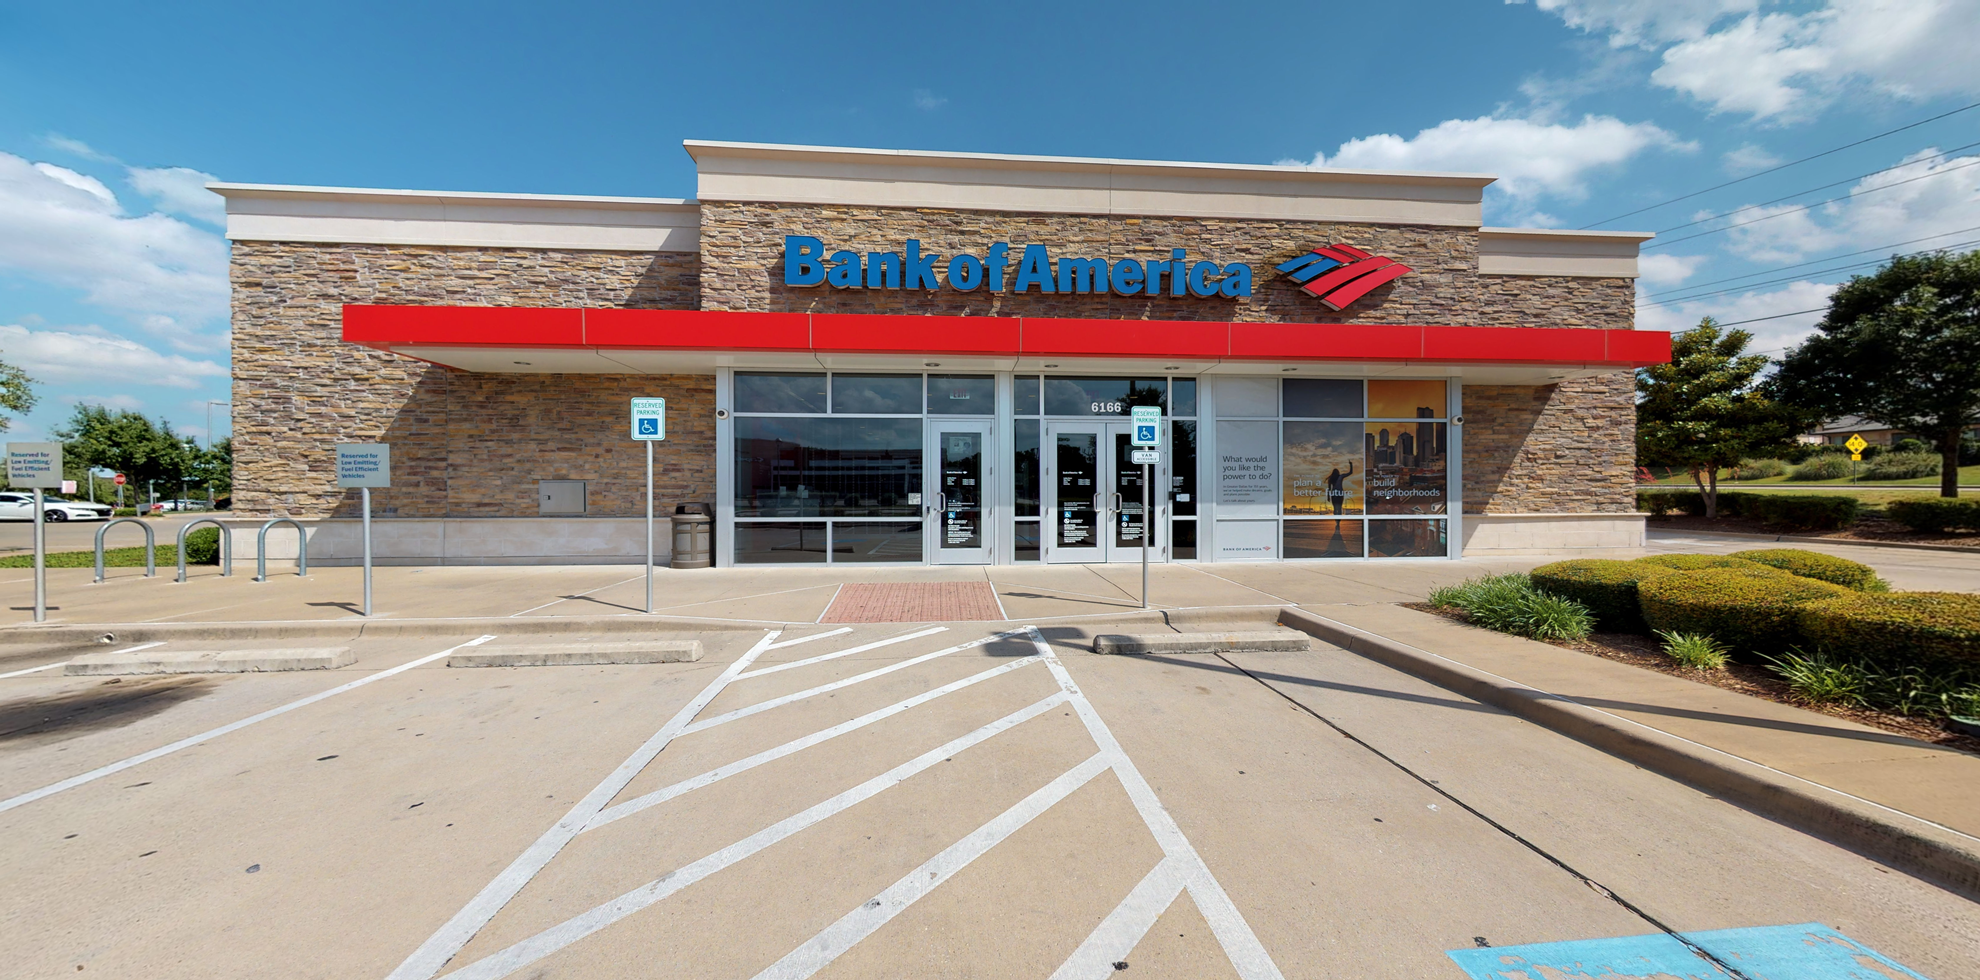 Bank of America financial center with drive-thru ATM | 6166 Retail Rd, Dallas, TX 75231